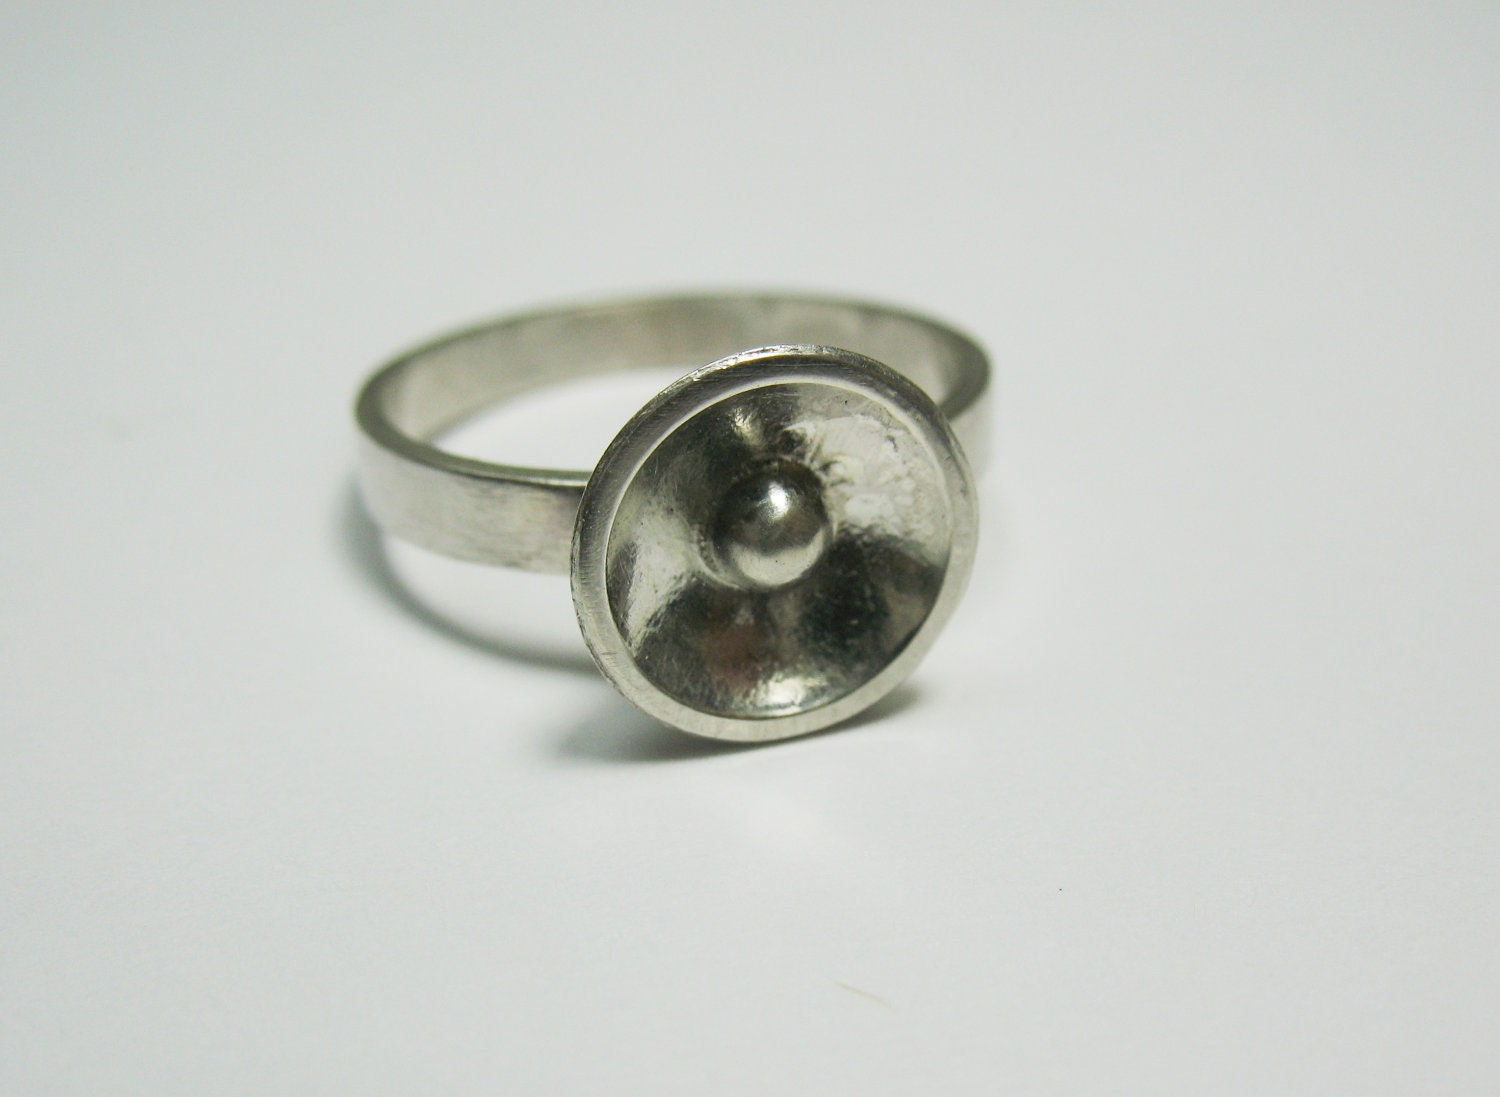 Silver Domed Disc with Granule, Circle and Ball Ring, Pea in a Pod Jewelry